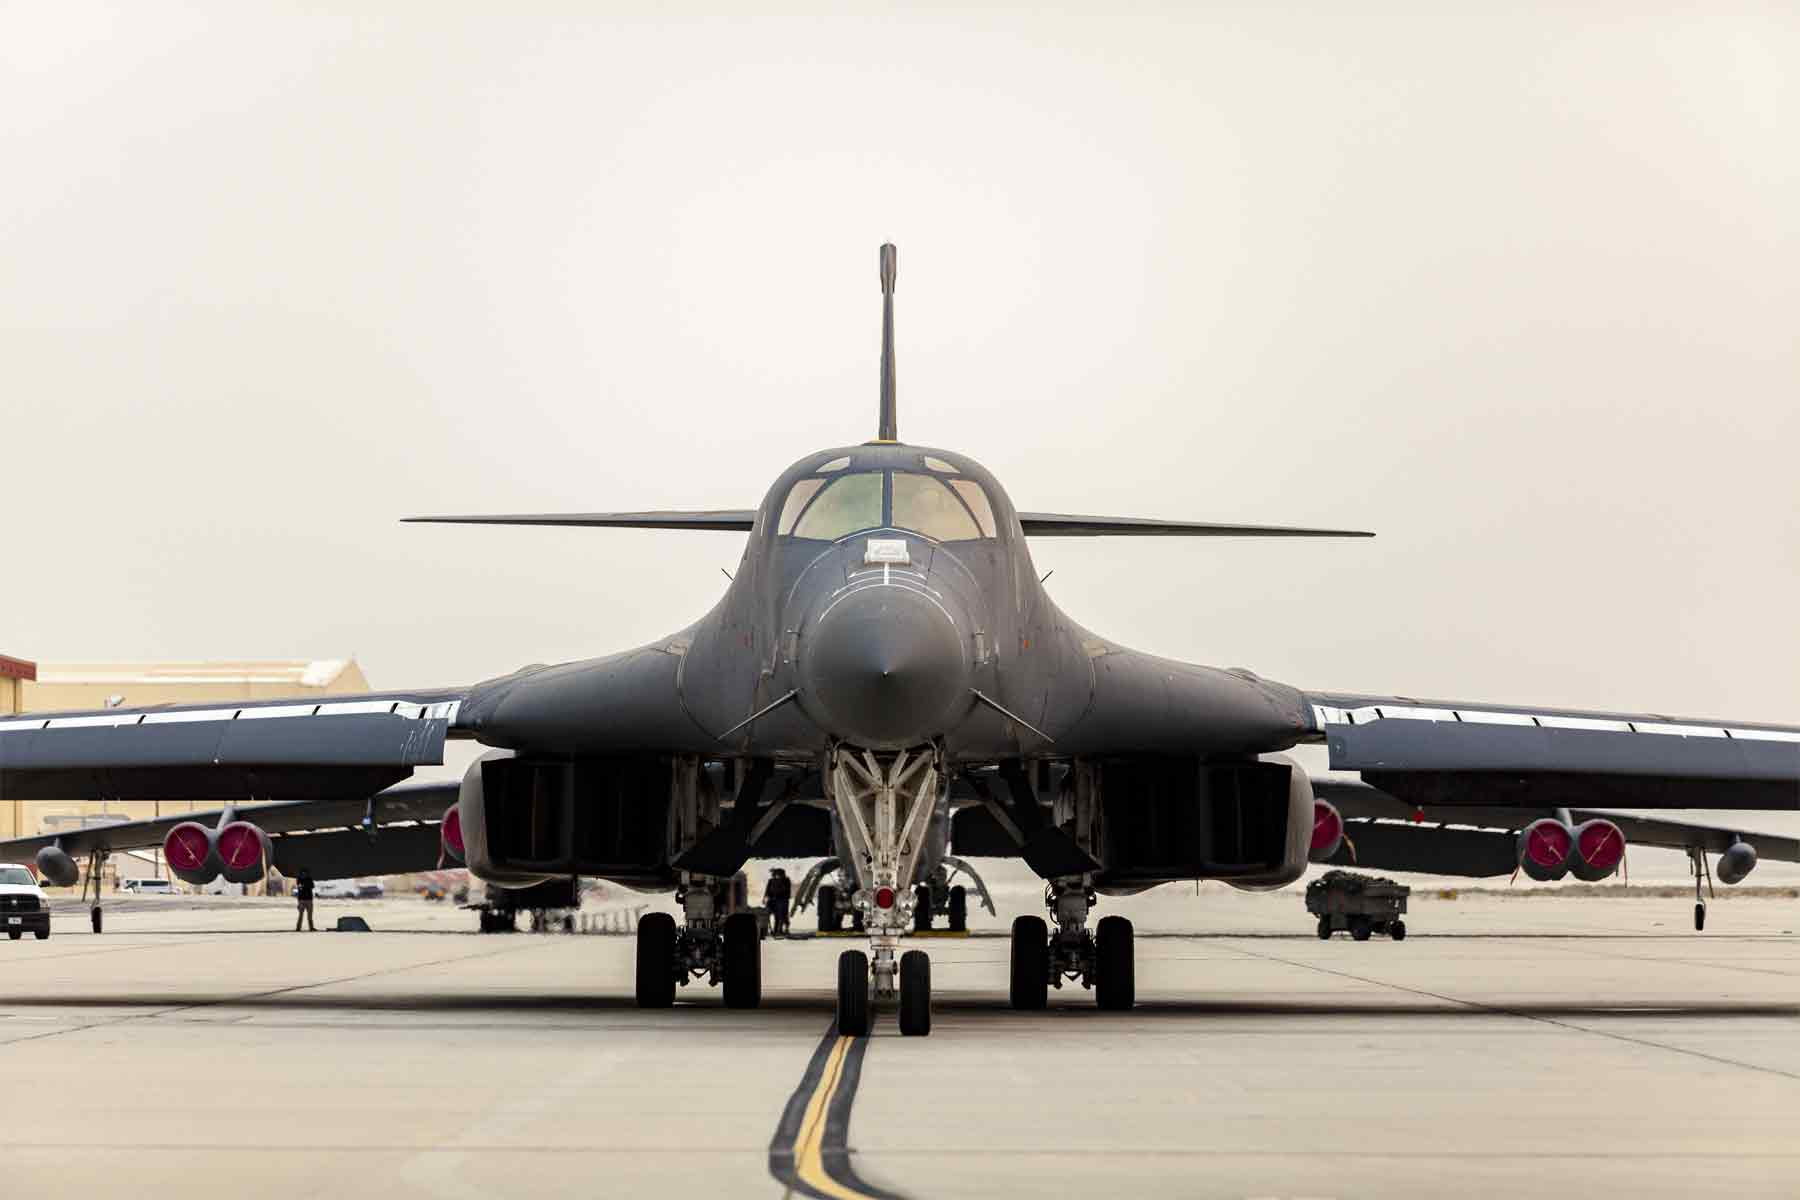 Last of 17 Retired B-1s Sent to Boneyard as Air Force Preps for B-21s